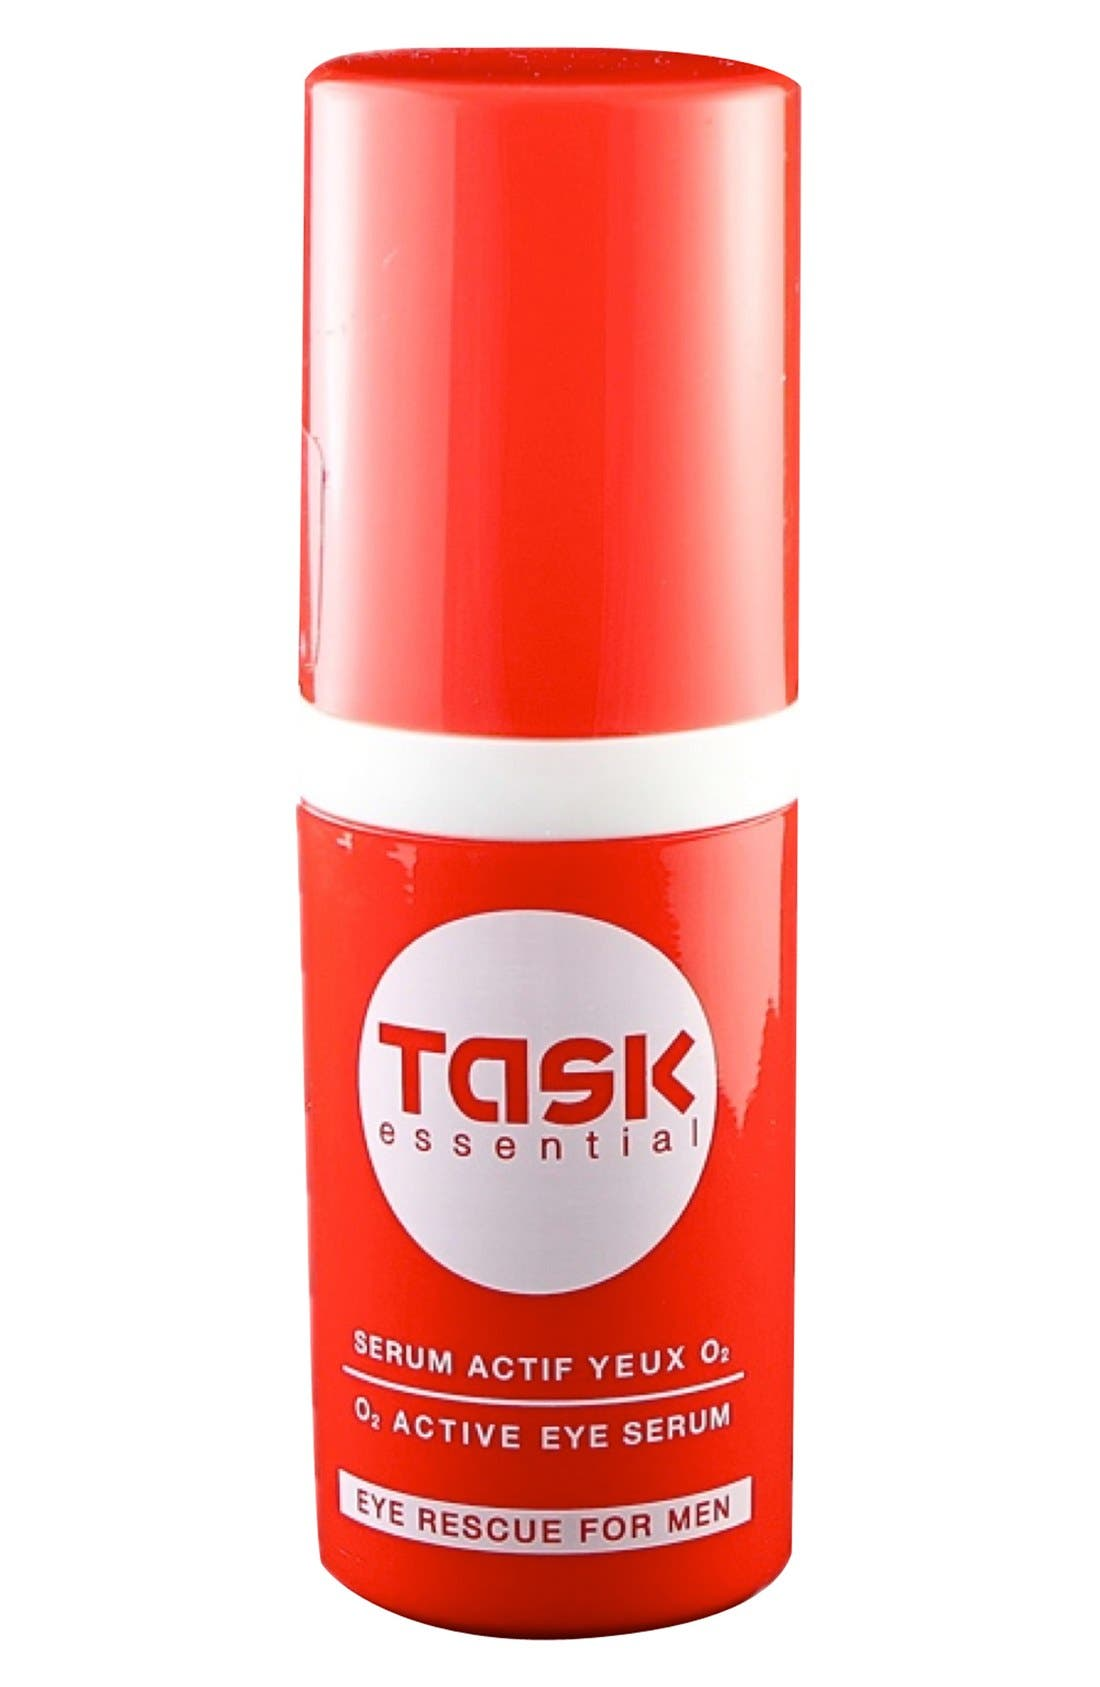 Task Essential O2 Active Eye Serum